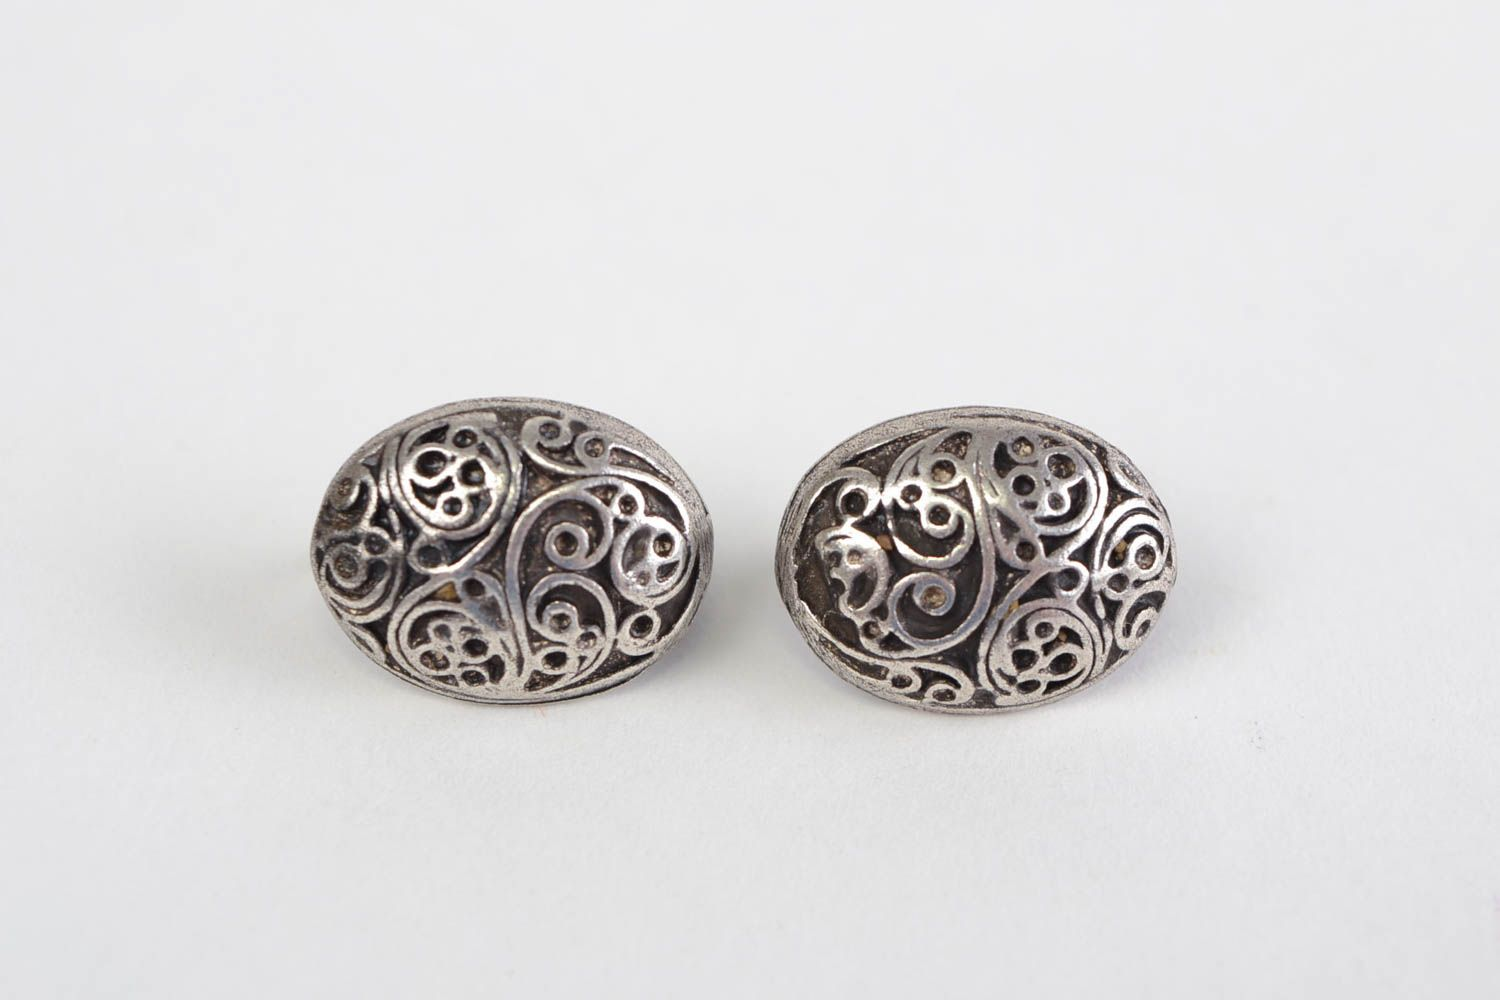 Handmade neat oval ornamented stud earrings cast of hypoallergenic metal alloy  photo 2